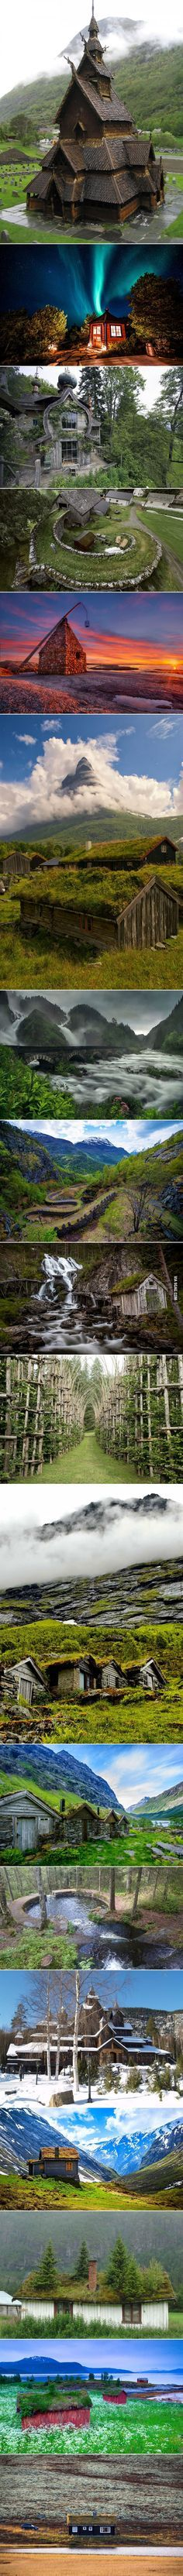 Norway... land of trolls and beautiful architecture - 9GAG ….Stay cheap and comfortable on your stopover in Oslo: www.airbnb.com/rooms/1036219?guests=2&s=ja99 and https://www.airbnb.com/rooms/6808361